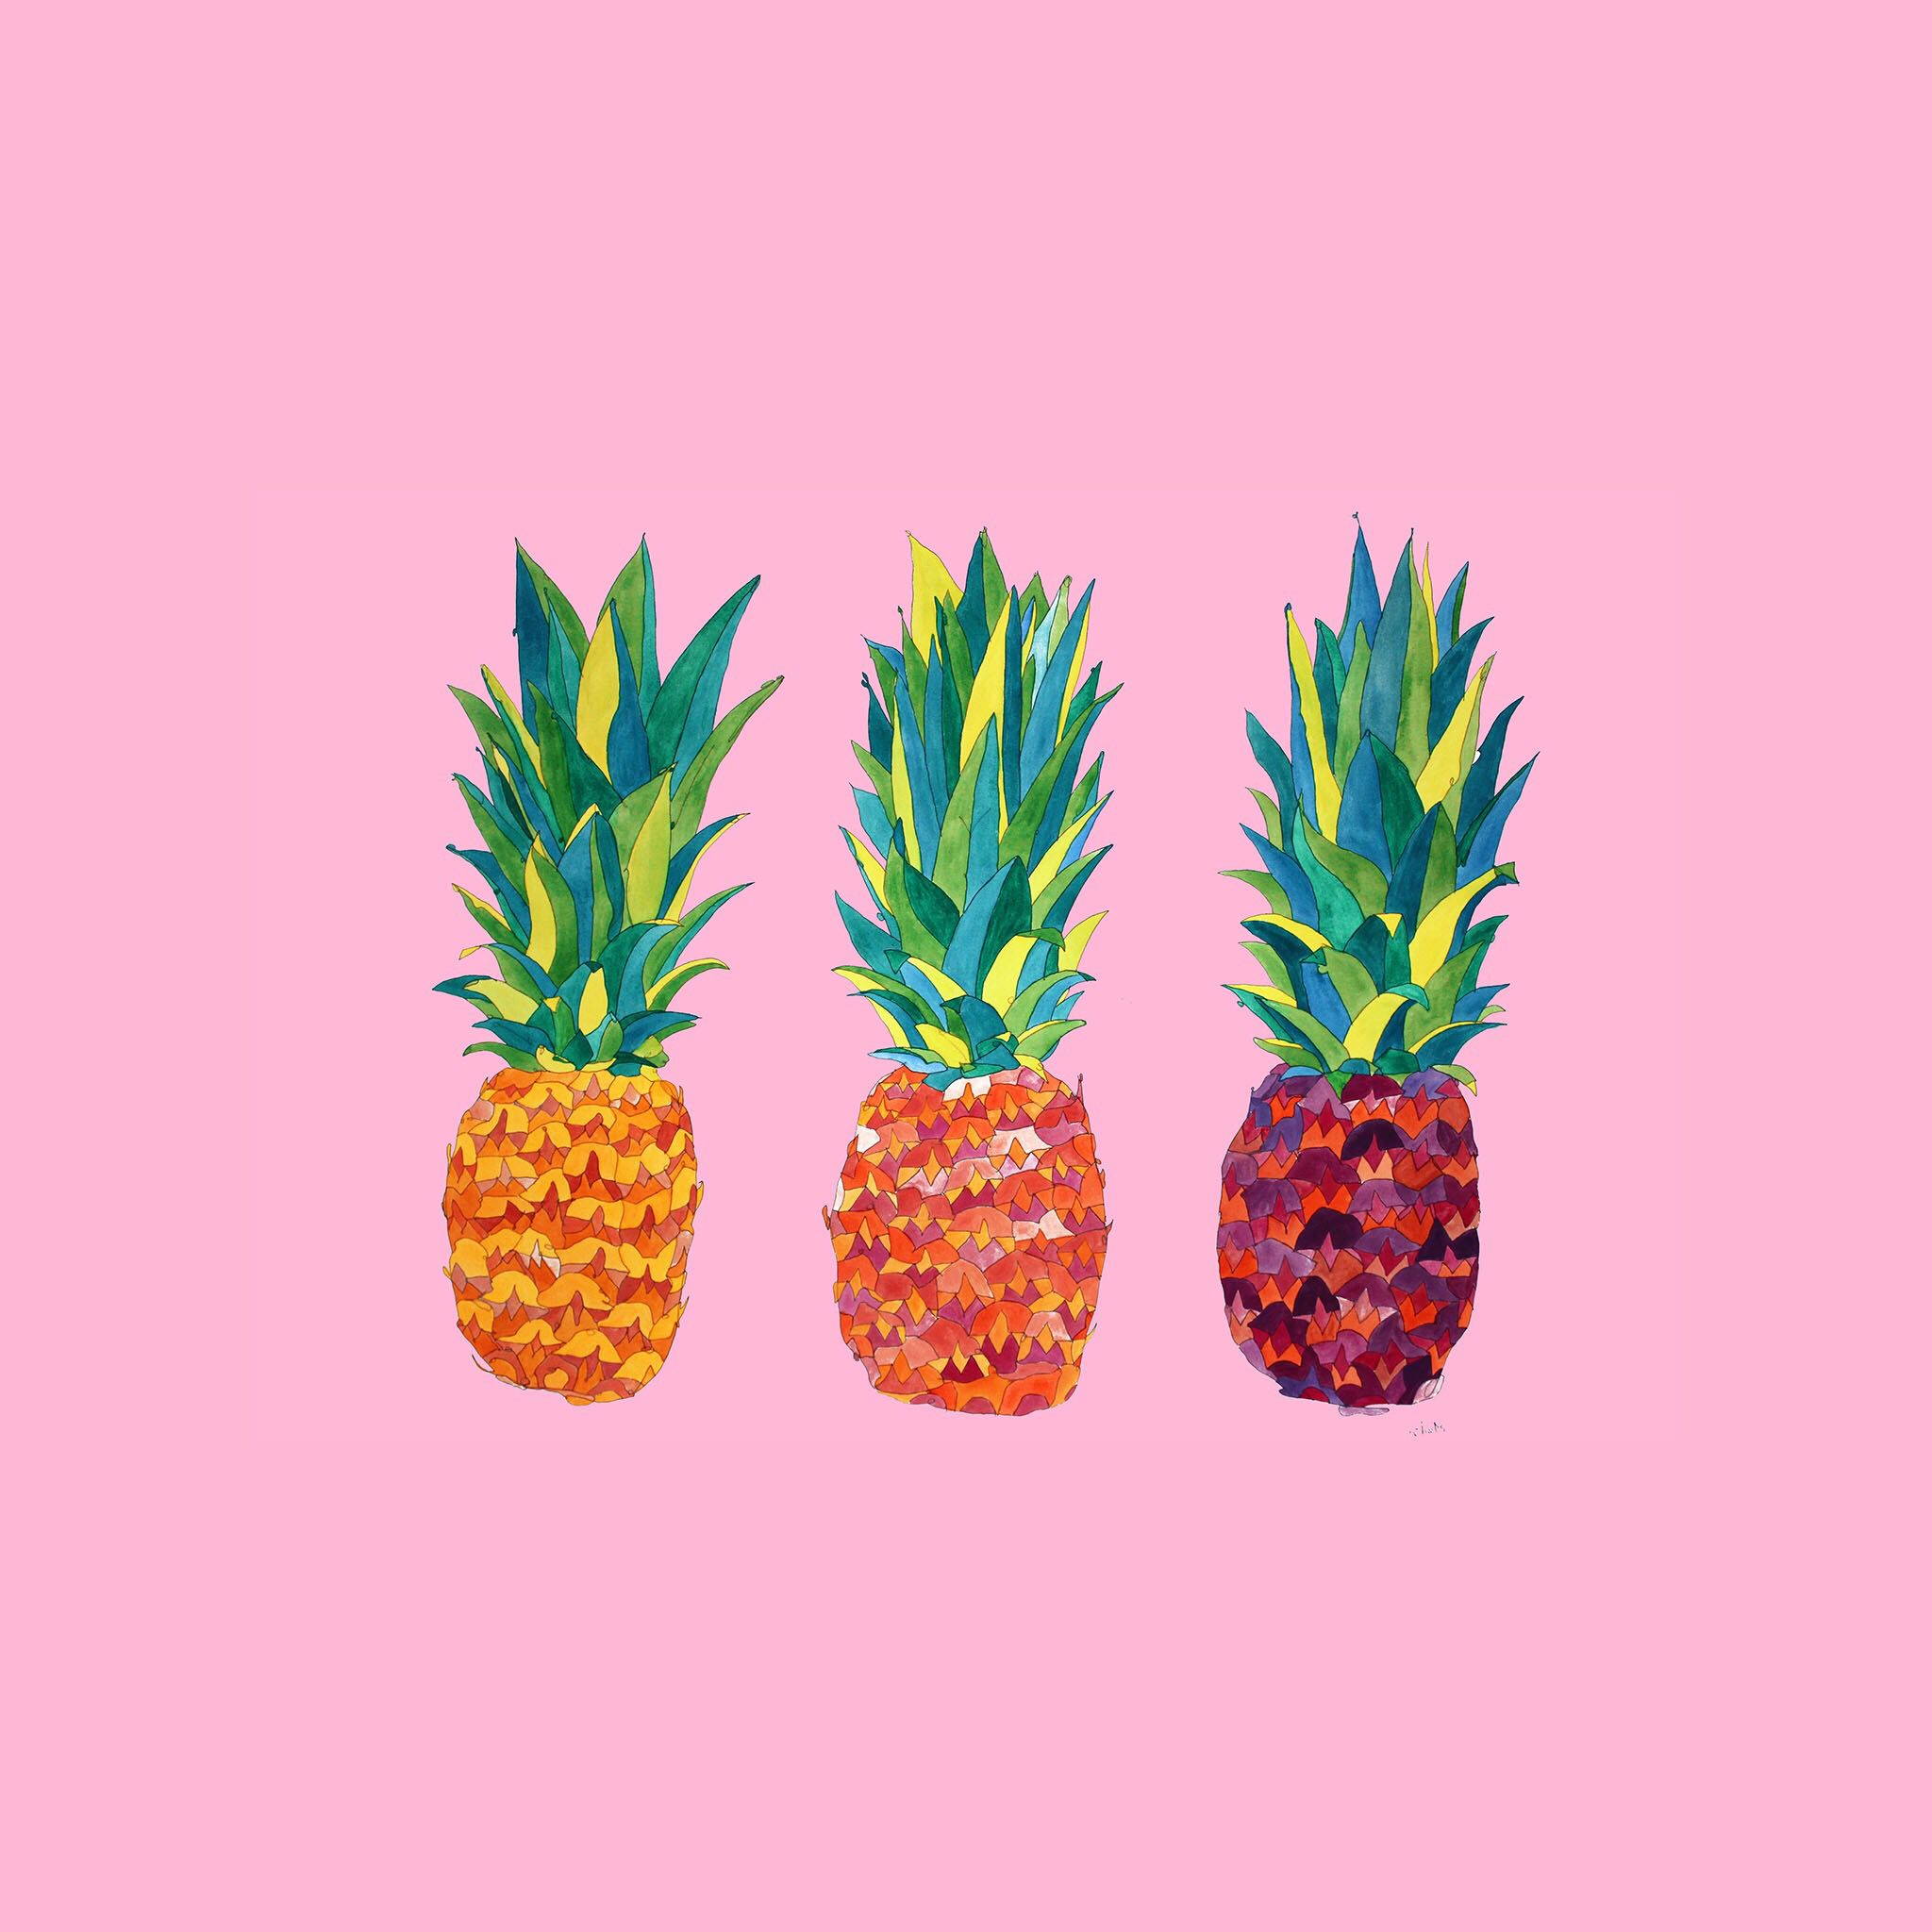 Pin by Brittany on Wallpapers Iphone wallpaper pineapple